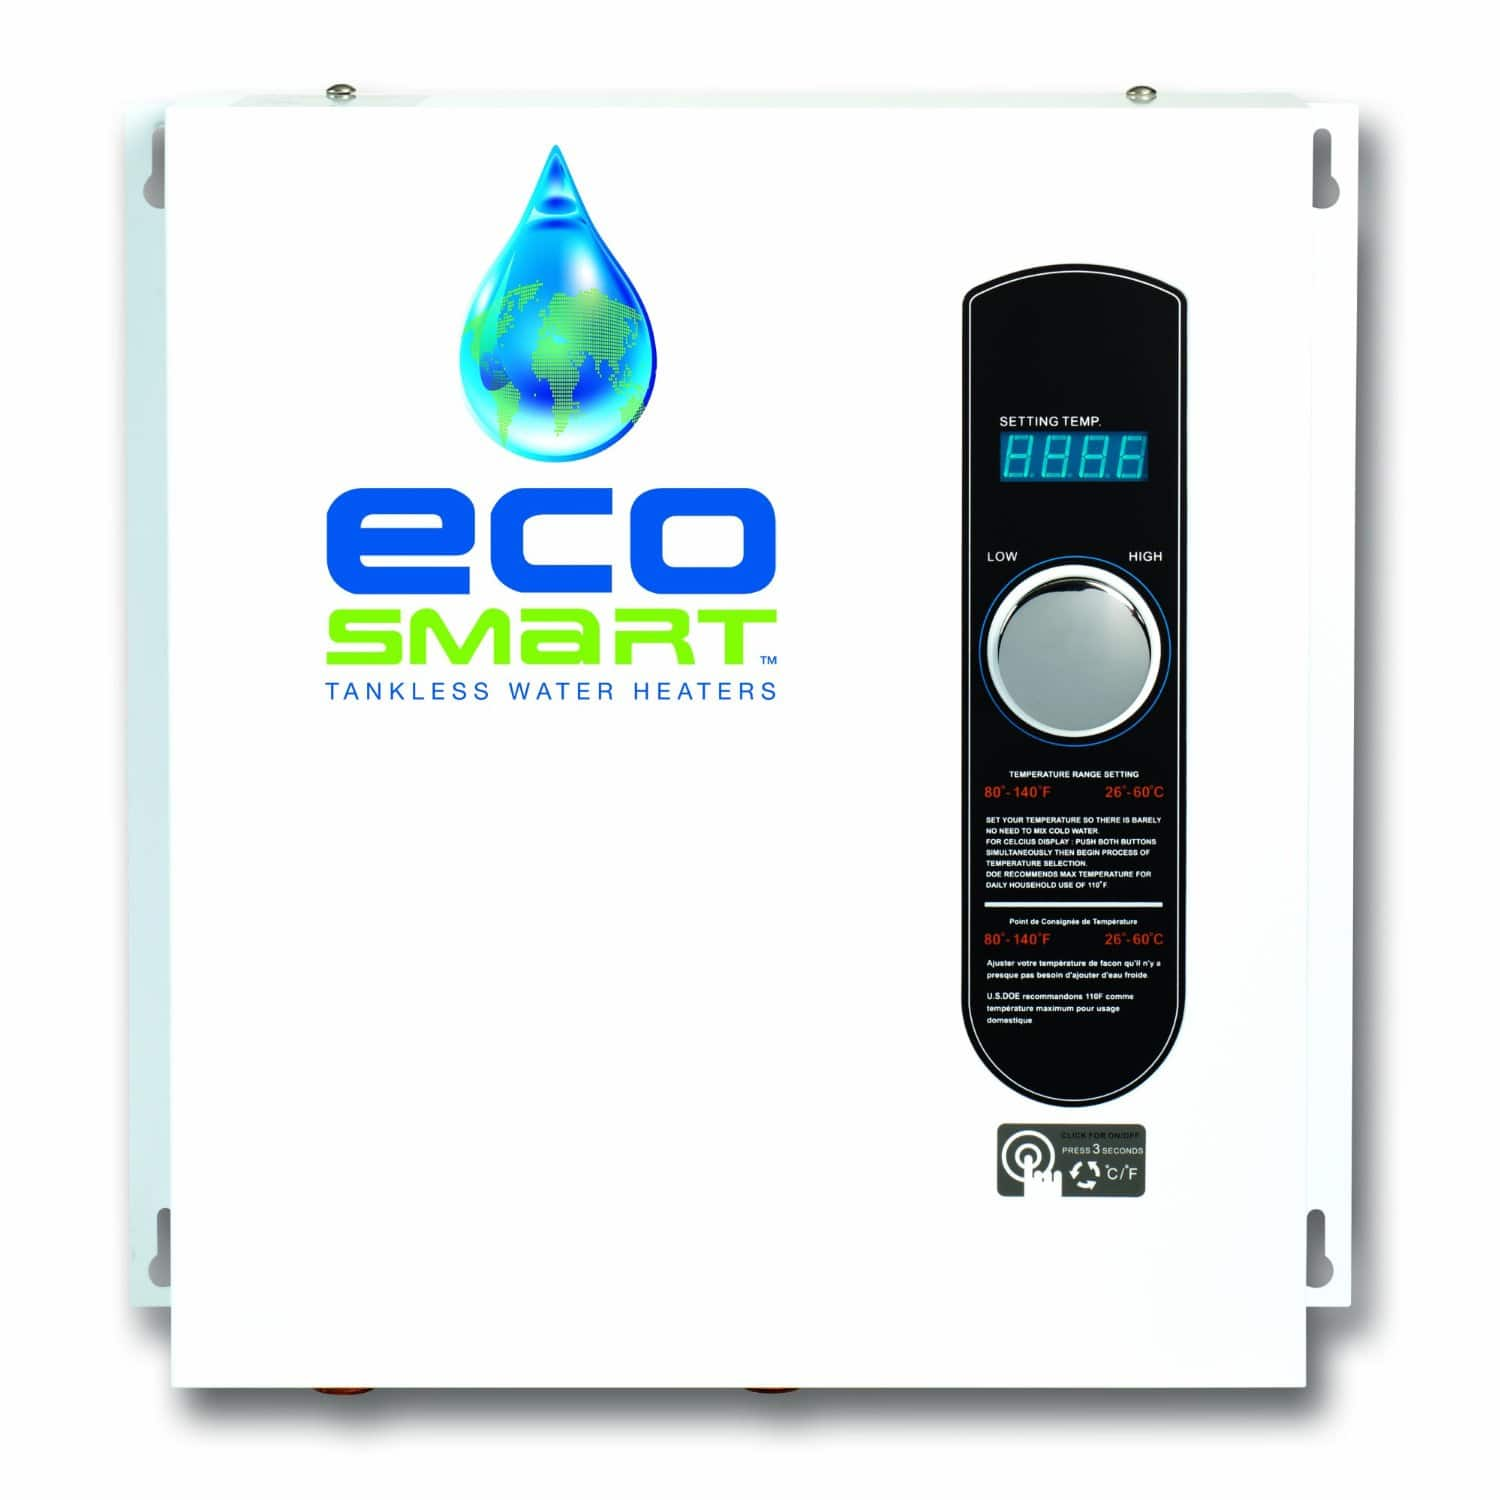 Ecosmart ECO 27 Electric Tankless Water Heater, 27 KW at 240 Volts , $348